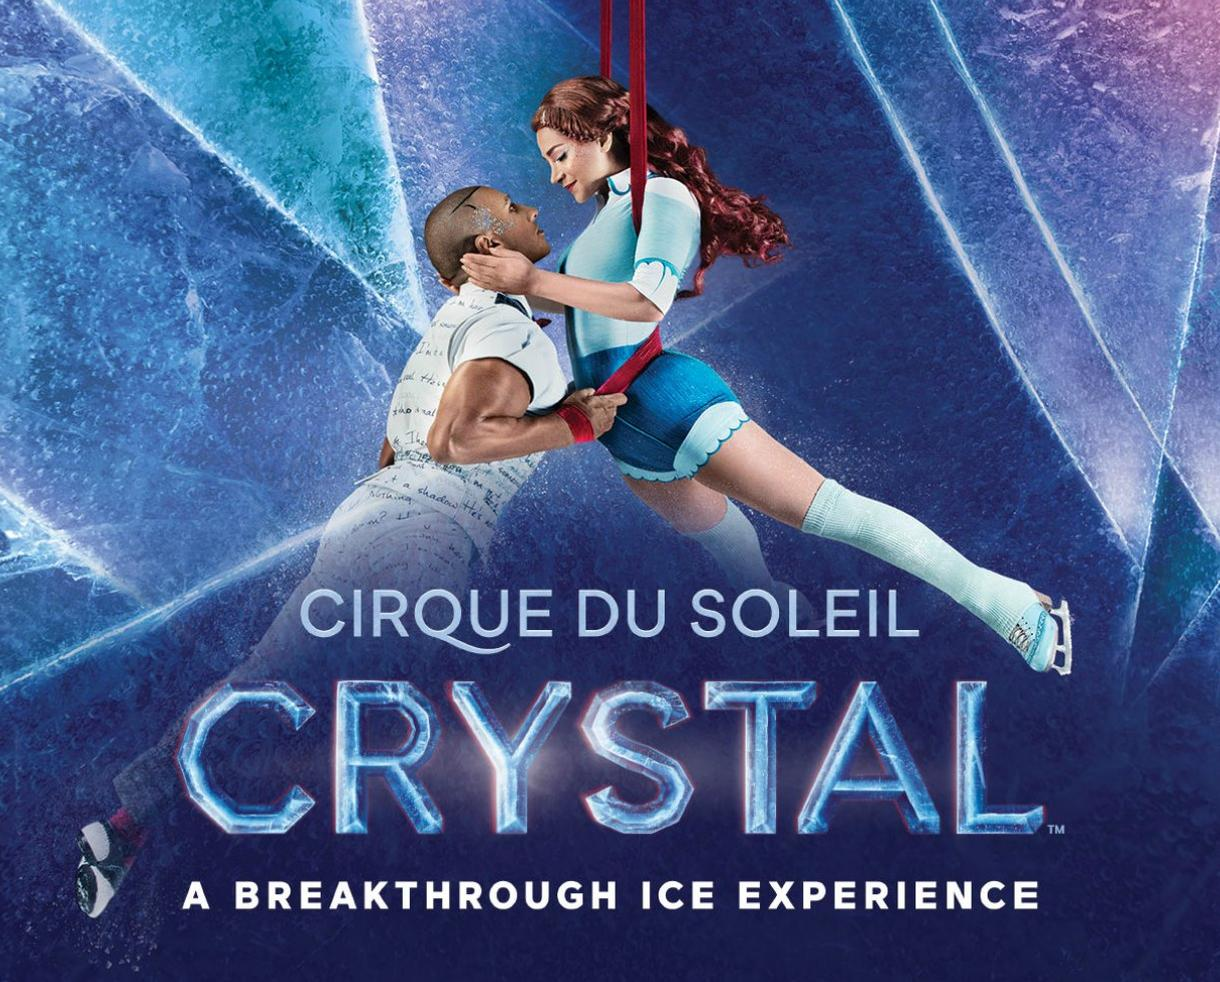 Deal: NEW and IMPROVED OFFER! Up to 30% Off Cirque du